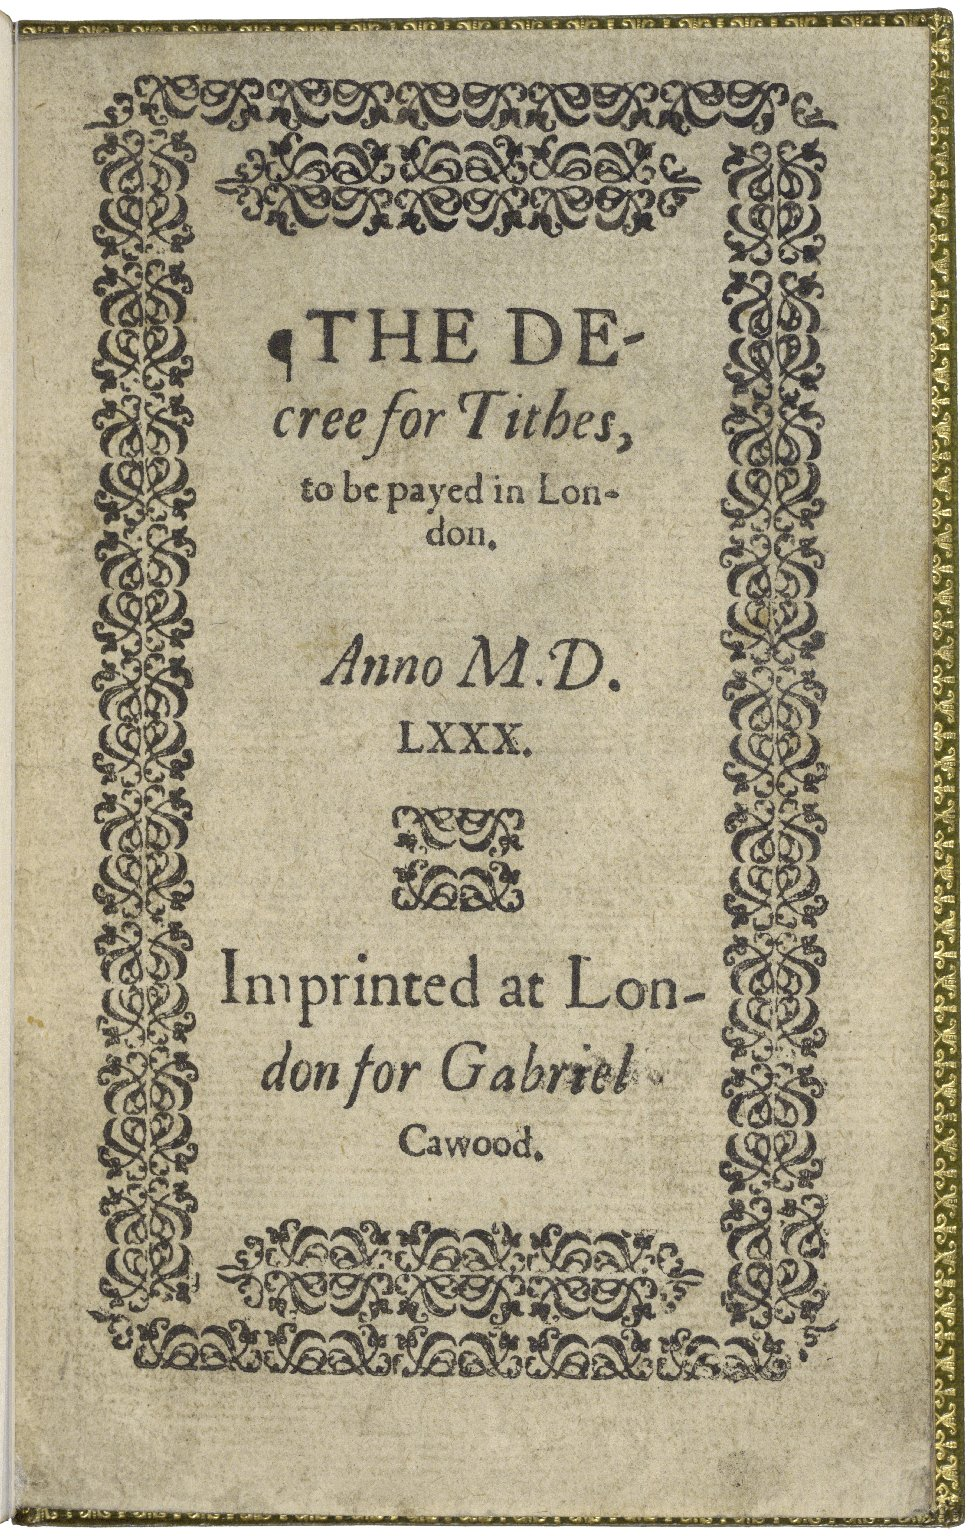 The decree for tithes, to be payed in London. Anno M.D.LXXX.